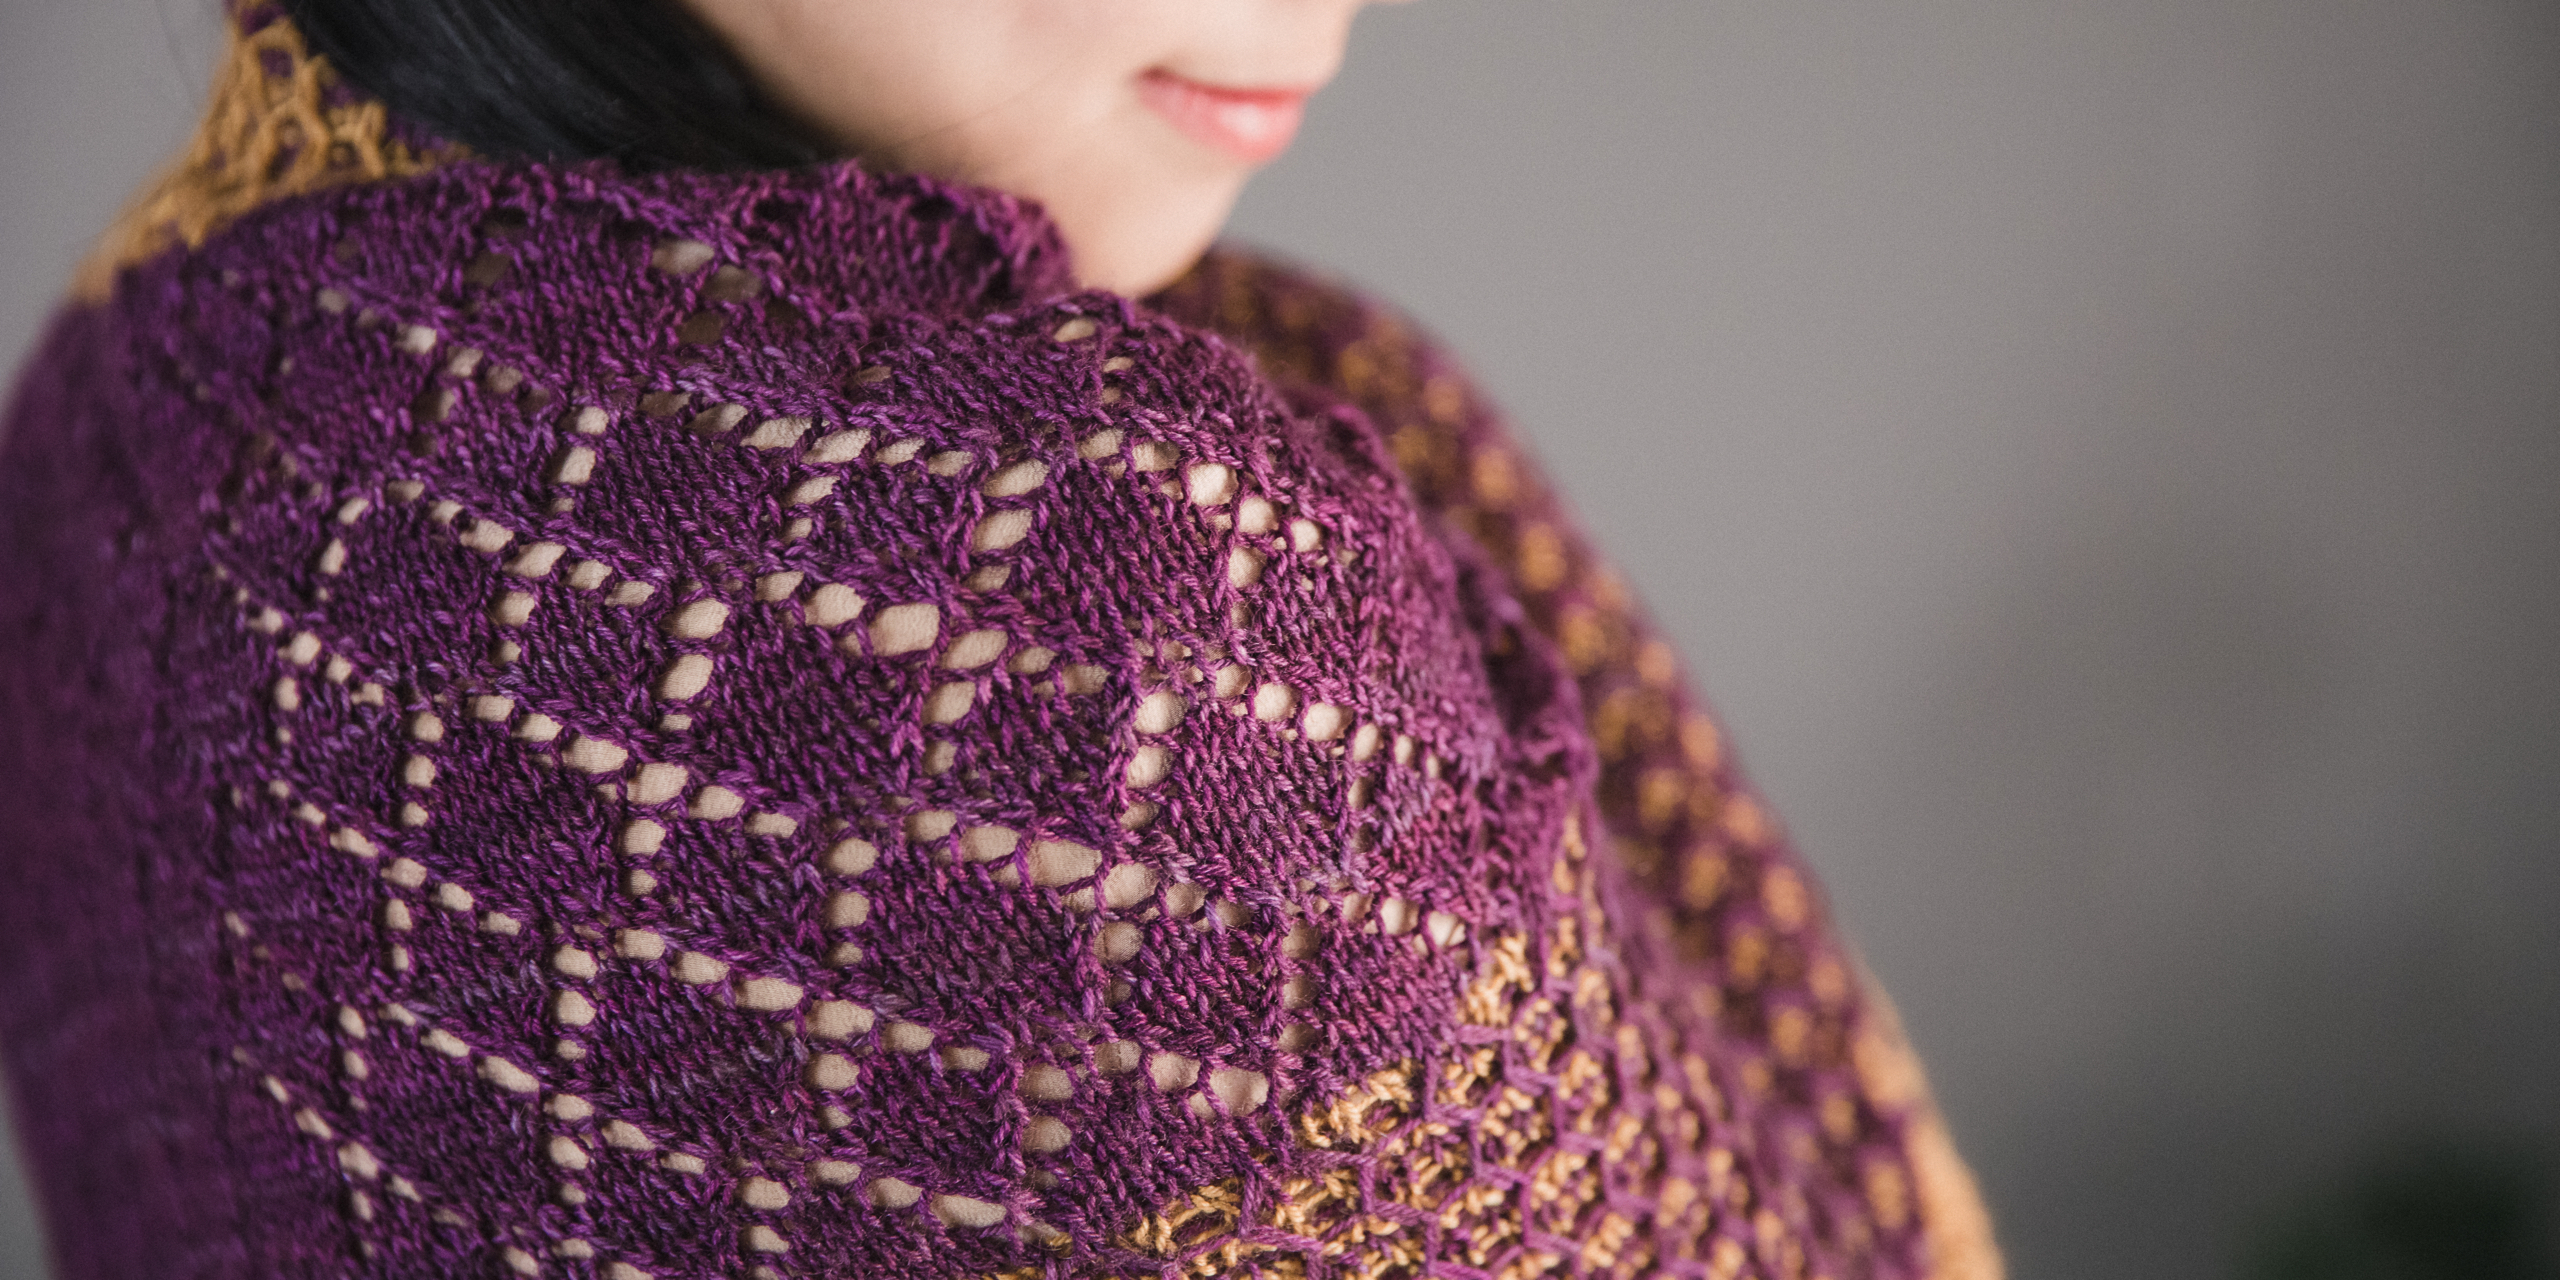 Niabell - New shawl knitting pattern by Tabetha Hedrick